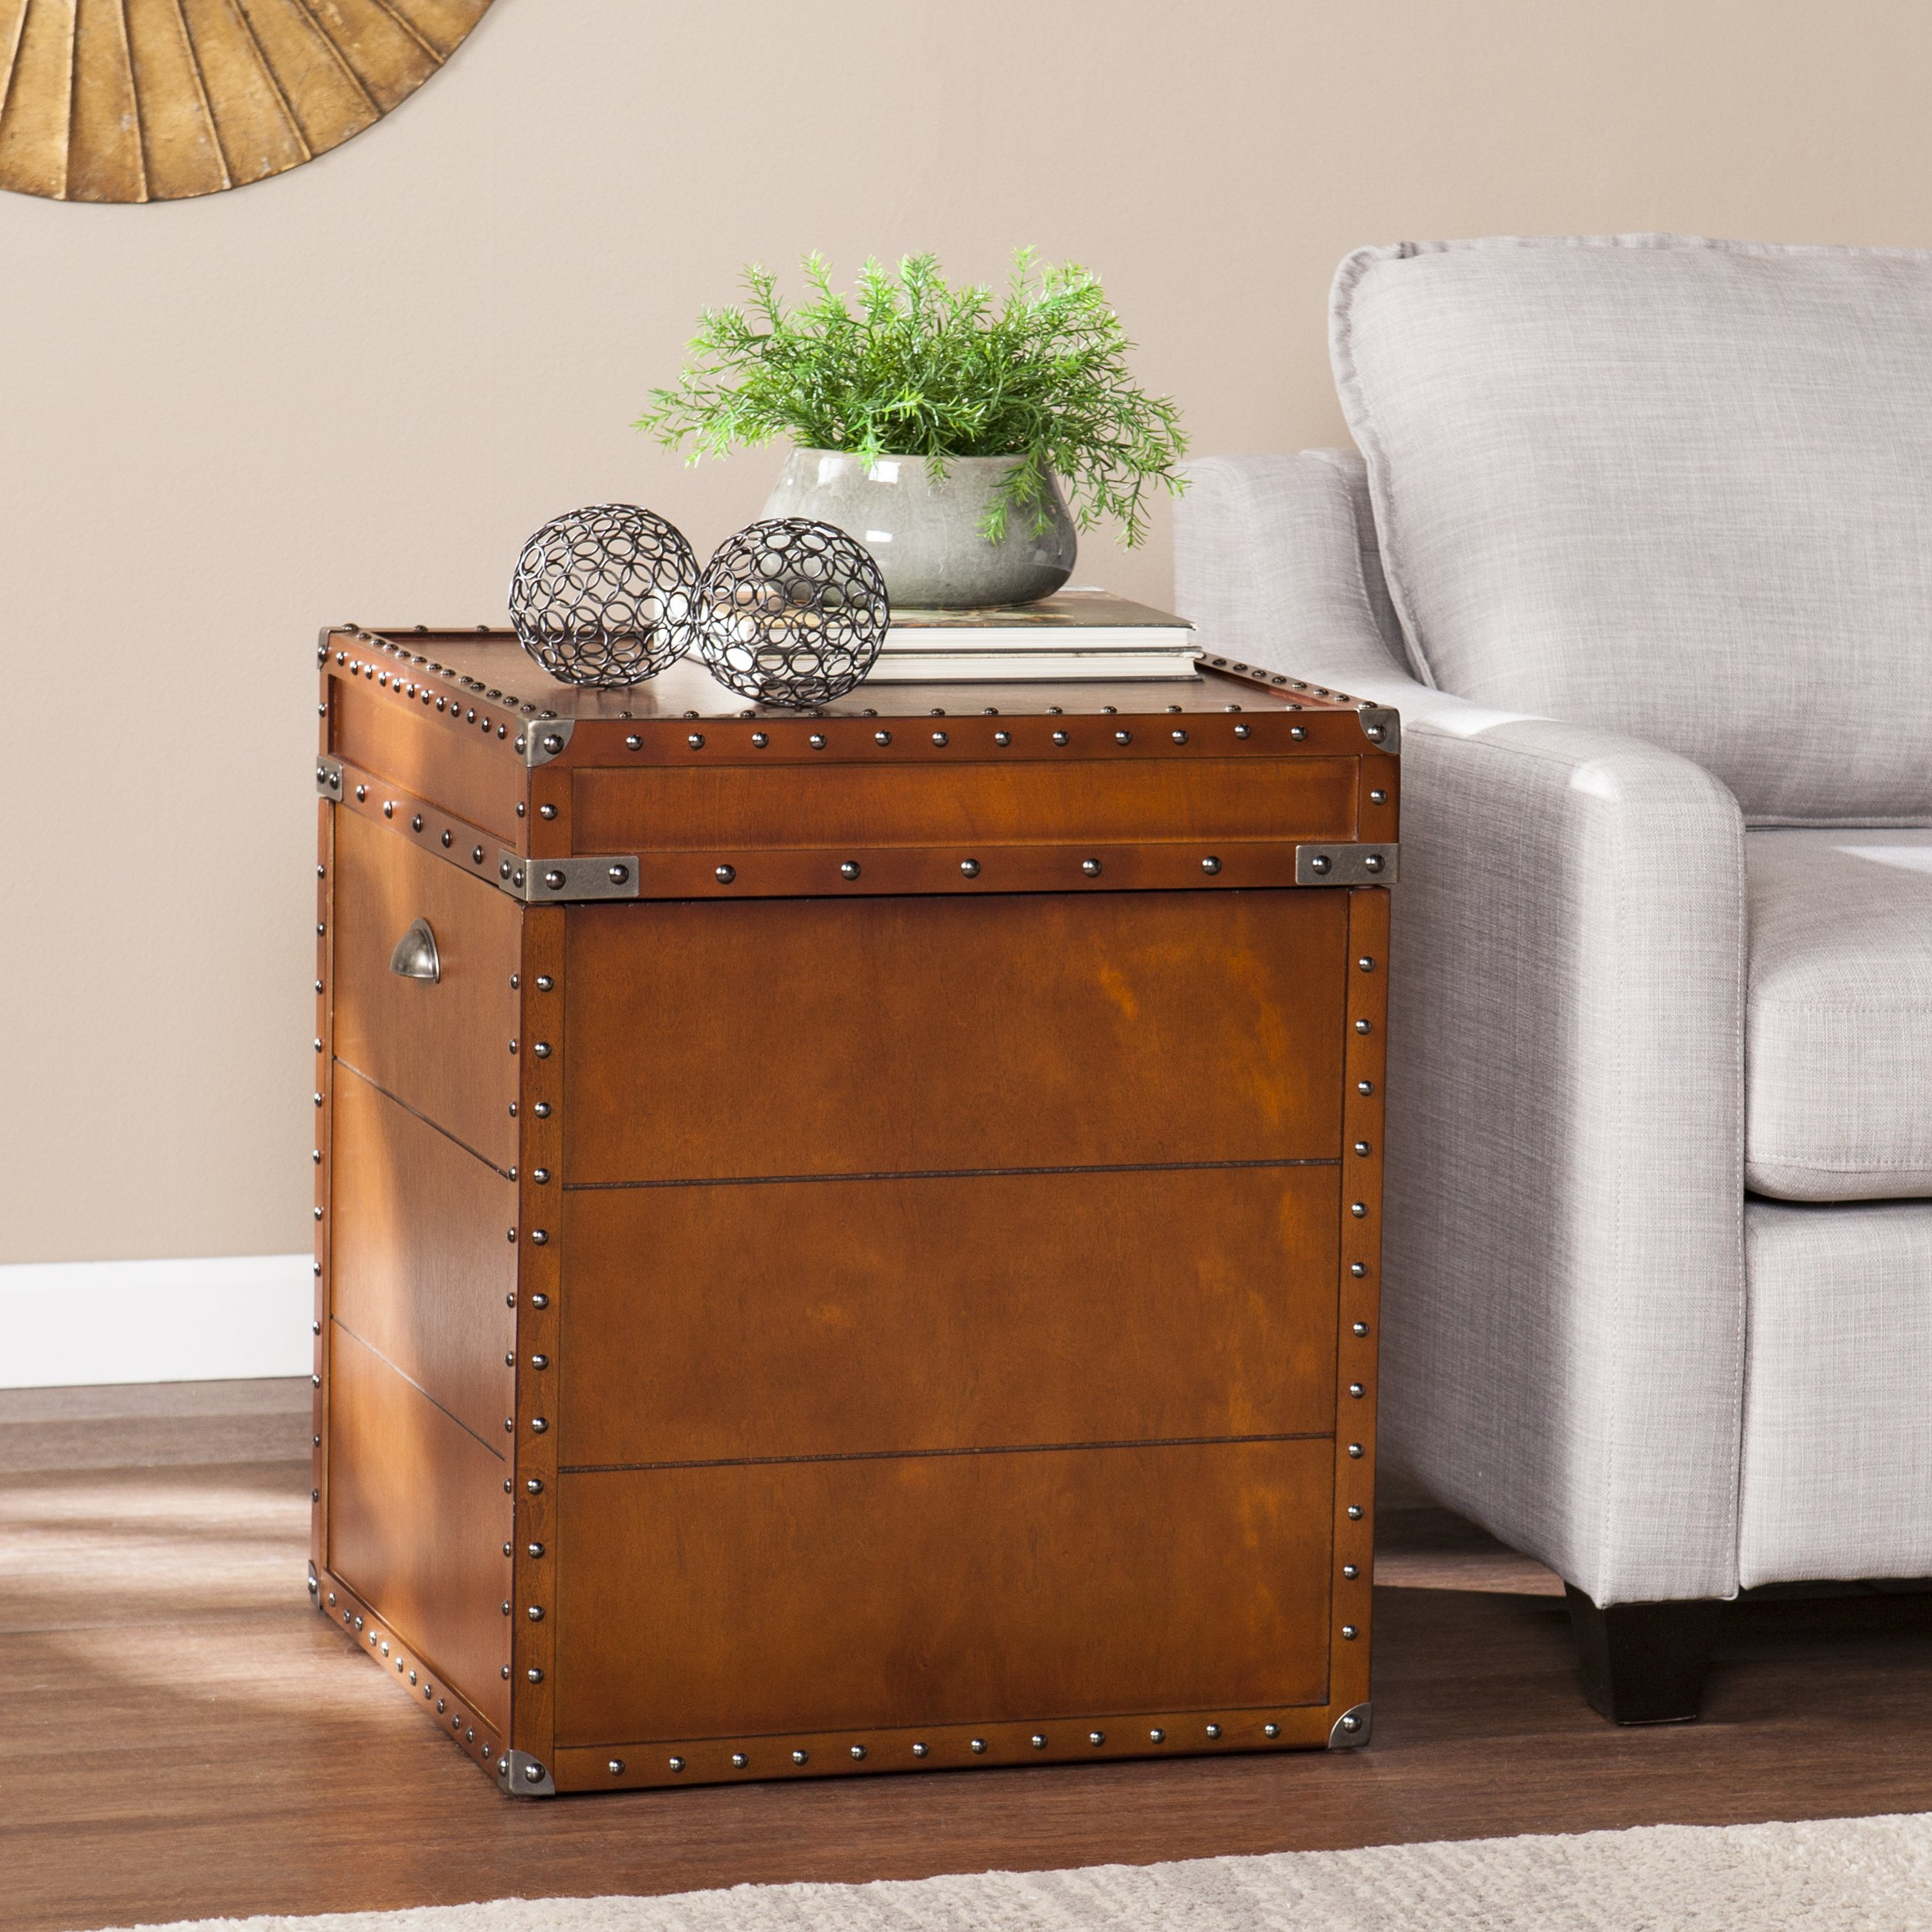 Southern Enterprises Steamer Trunk End Table - Rustic Nailhead Trim - Refinded Industrial Style by Southern Enterprises (Image #2)